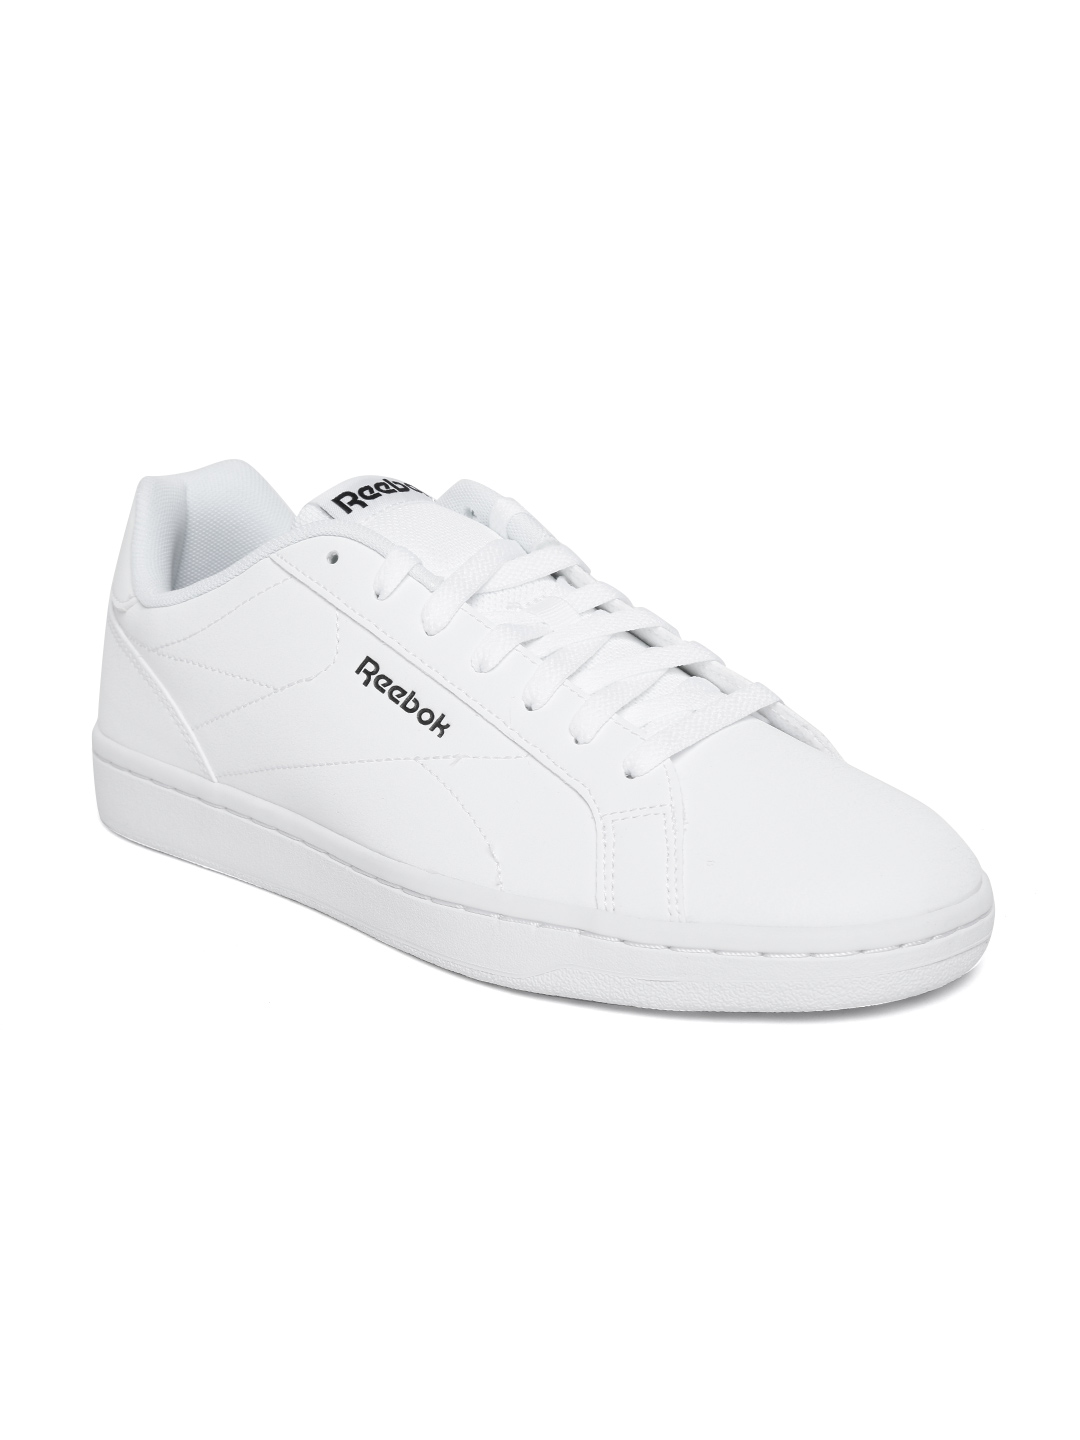 4518e580afa Buy Reebok Classic Men White Royal Complete CLN Sneakers - Casual ...